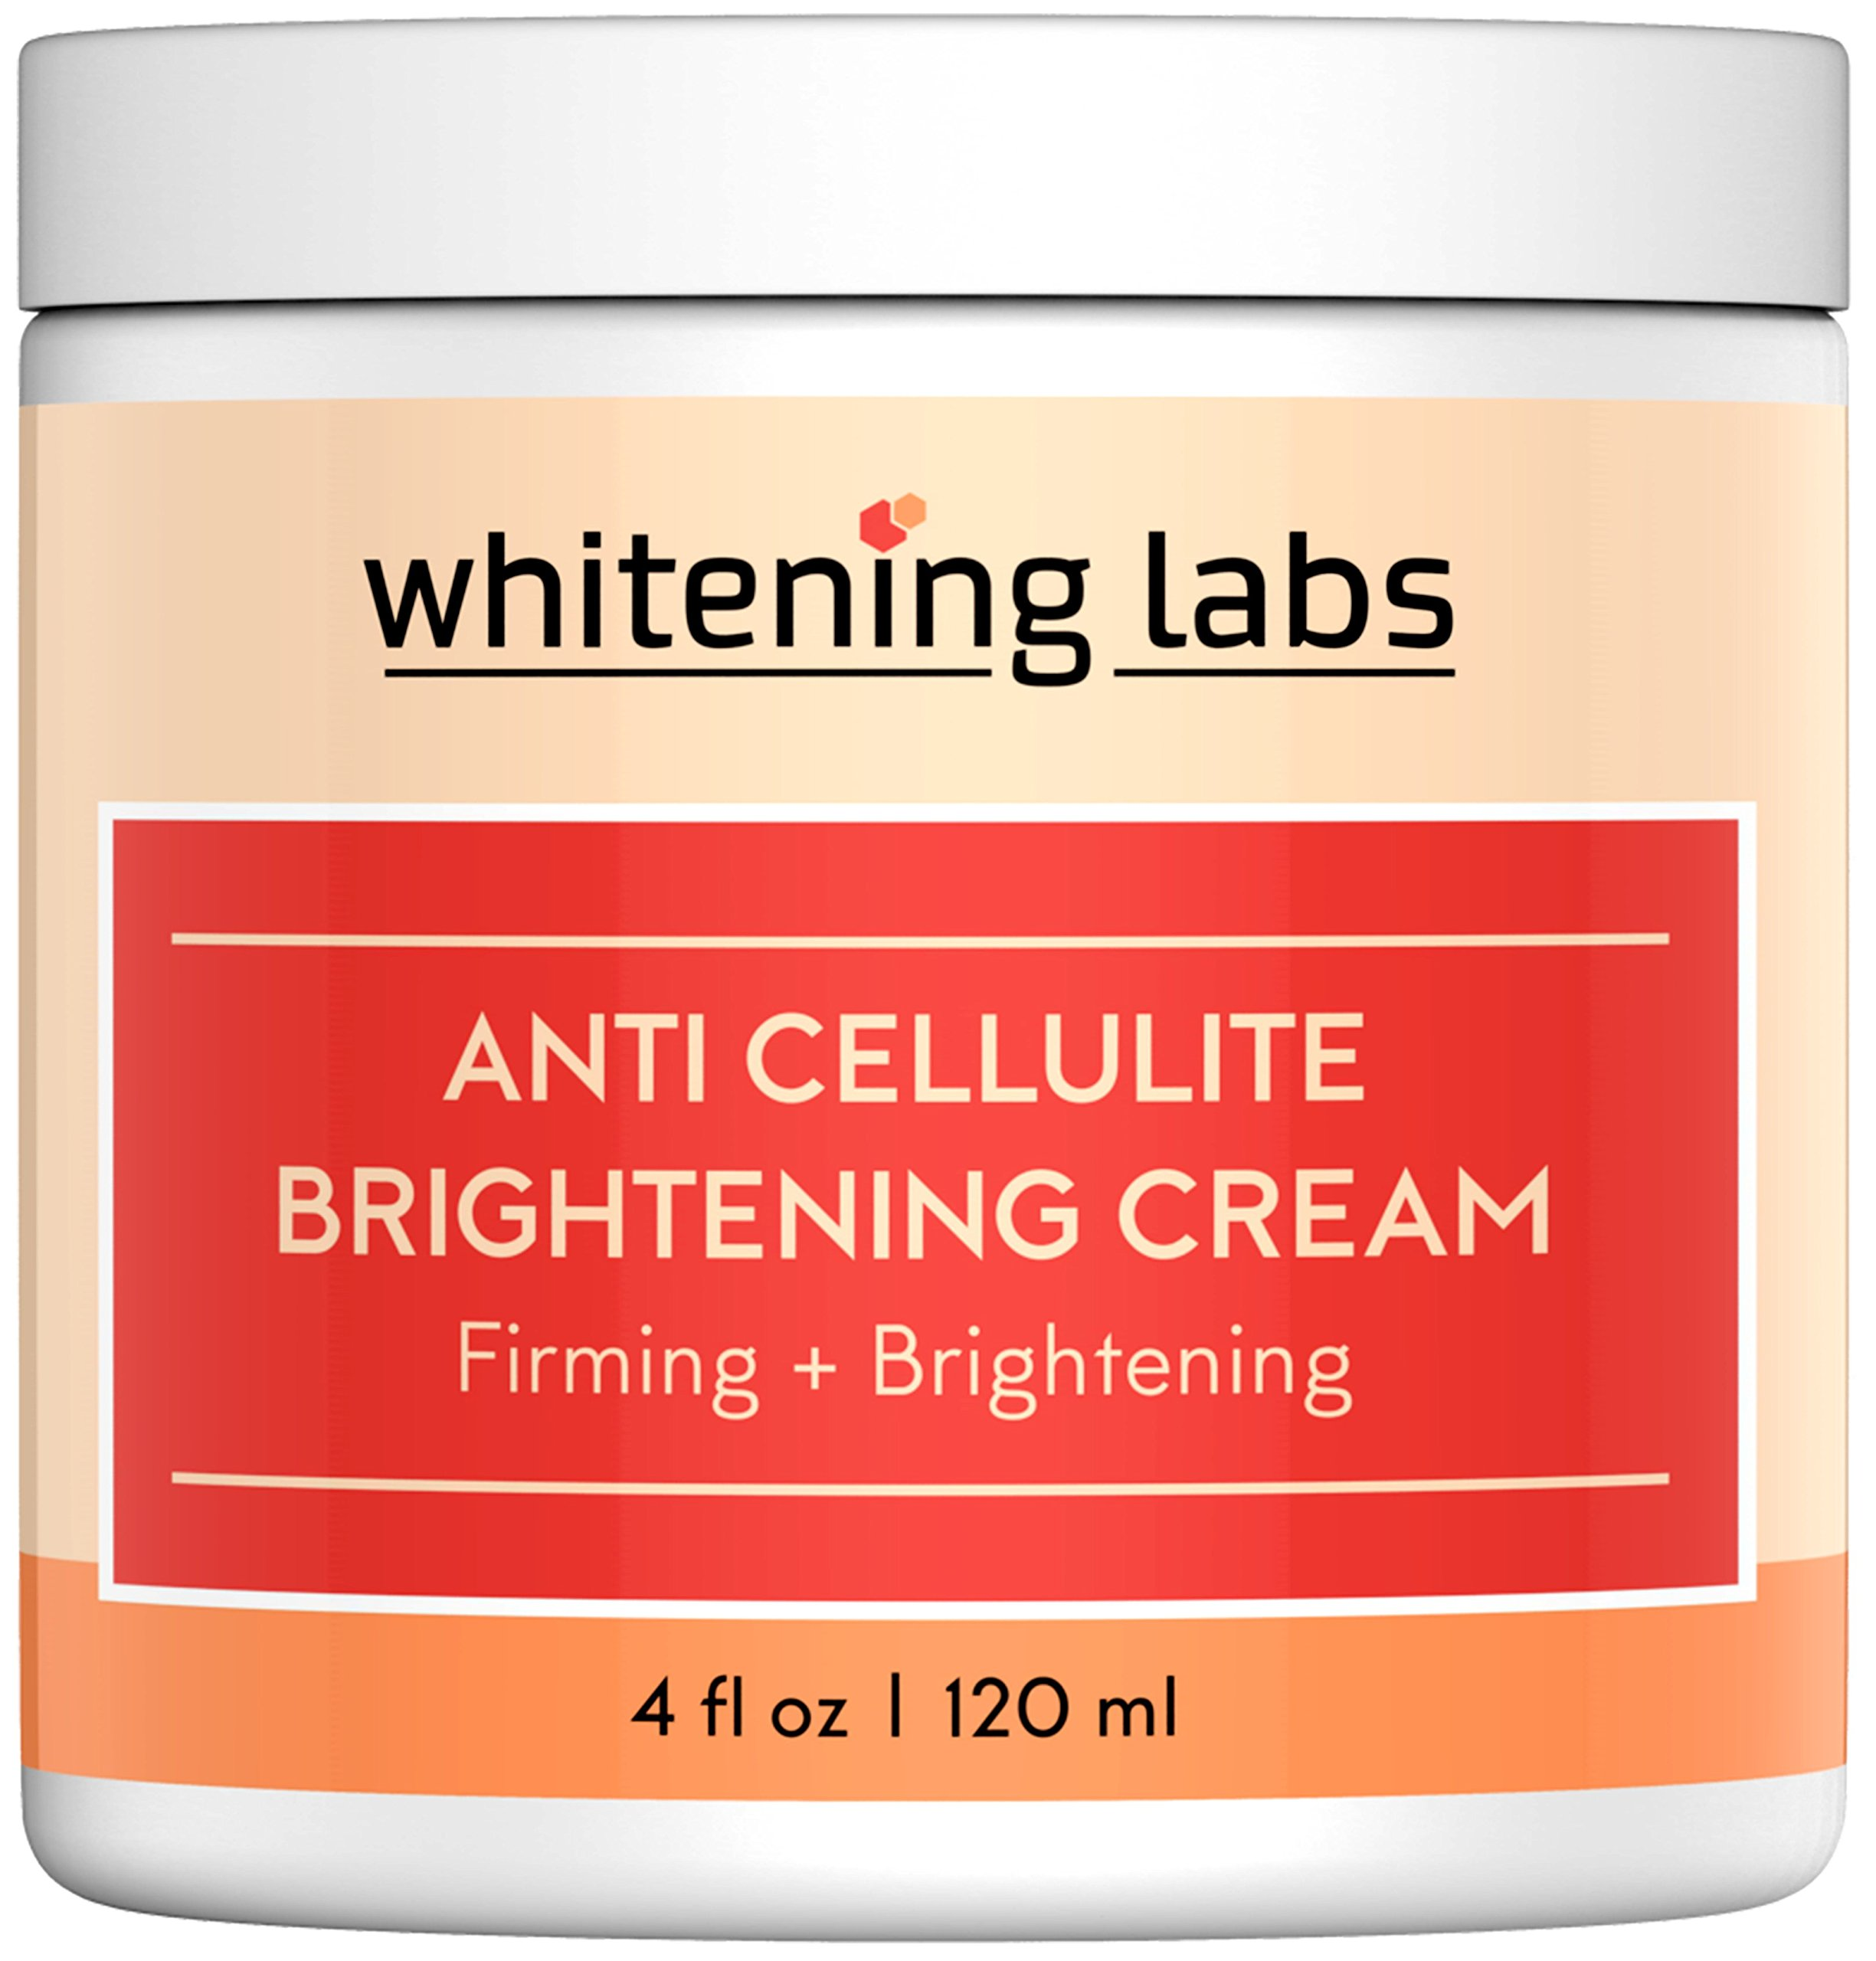 Skin Whitening Cream With Anti Cellulite Firming Effect. Skin Tightening Cream Contains Hyaluronic Acid Glycolic Acid Green Tea 4 ounce